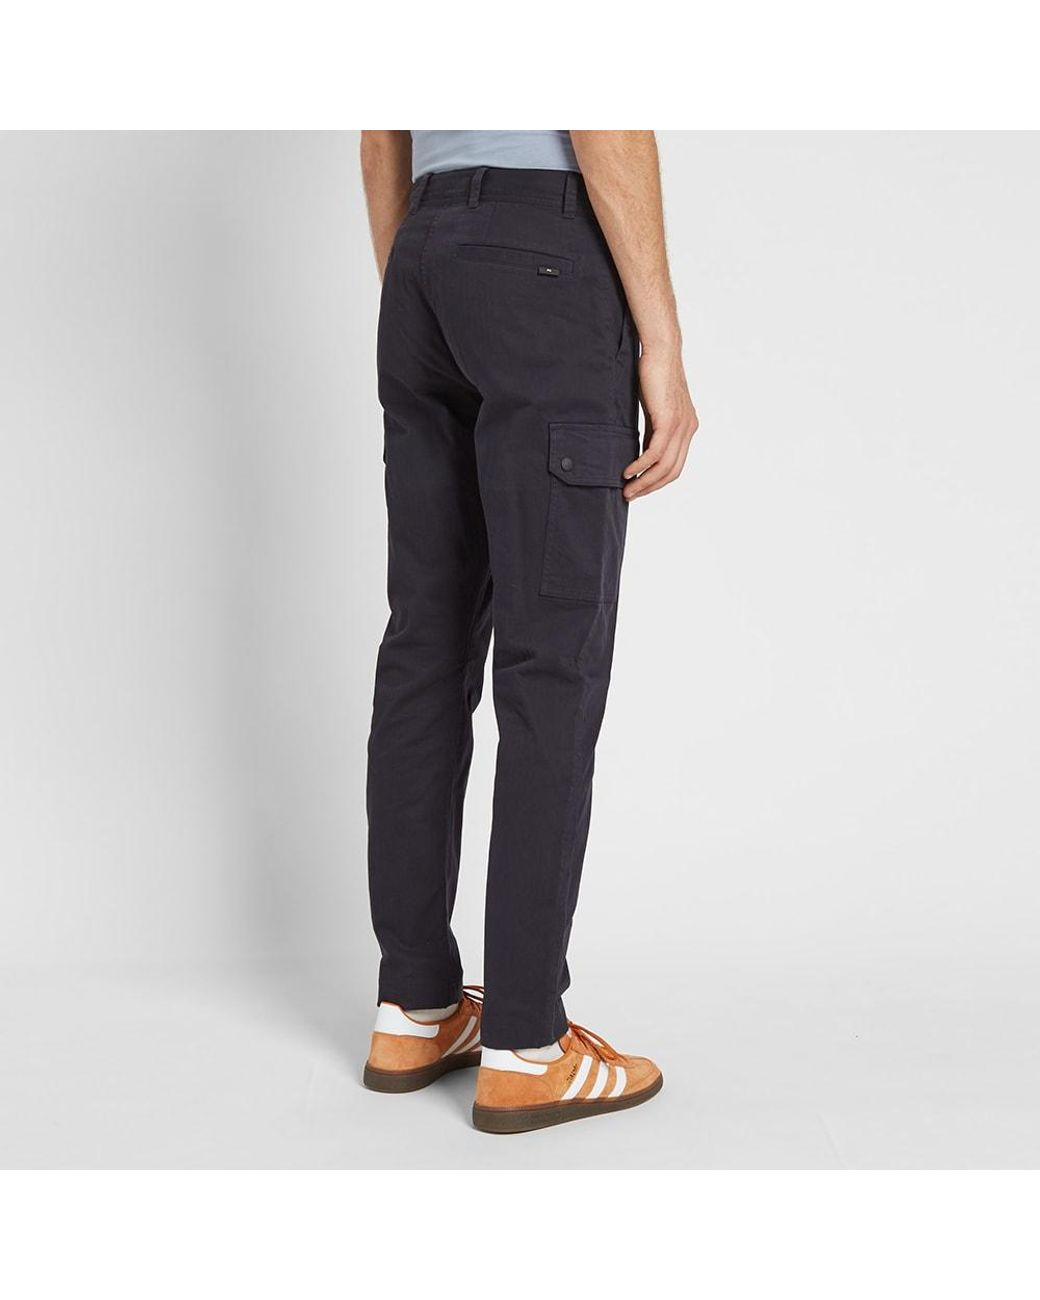 first look great look new york Paul Smith Herringbone Cargo Pant in Blue for Men - Lyst